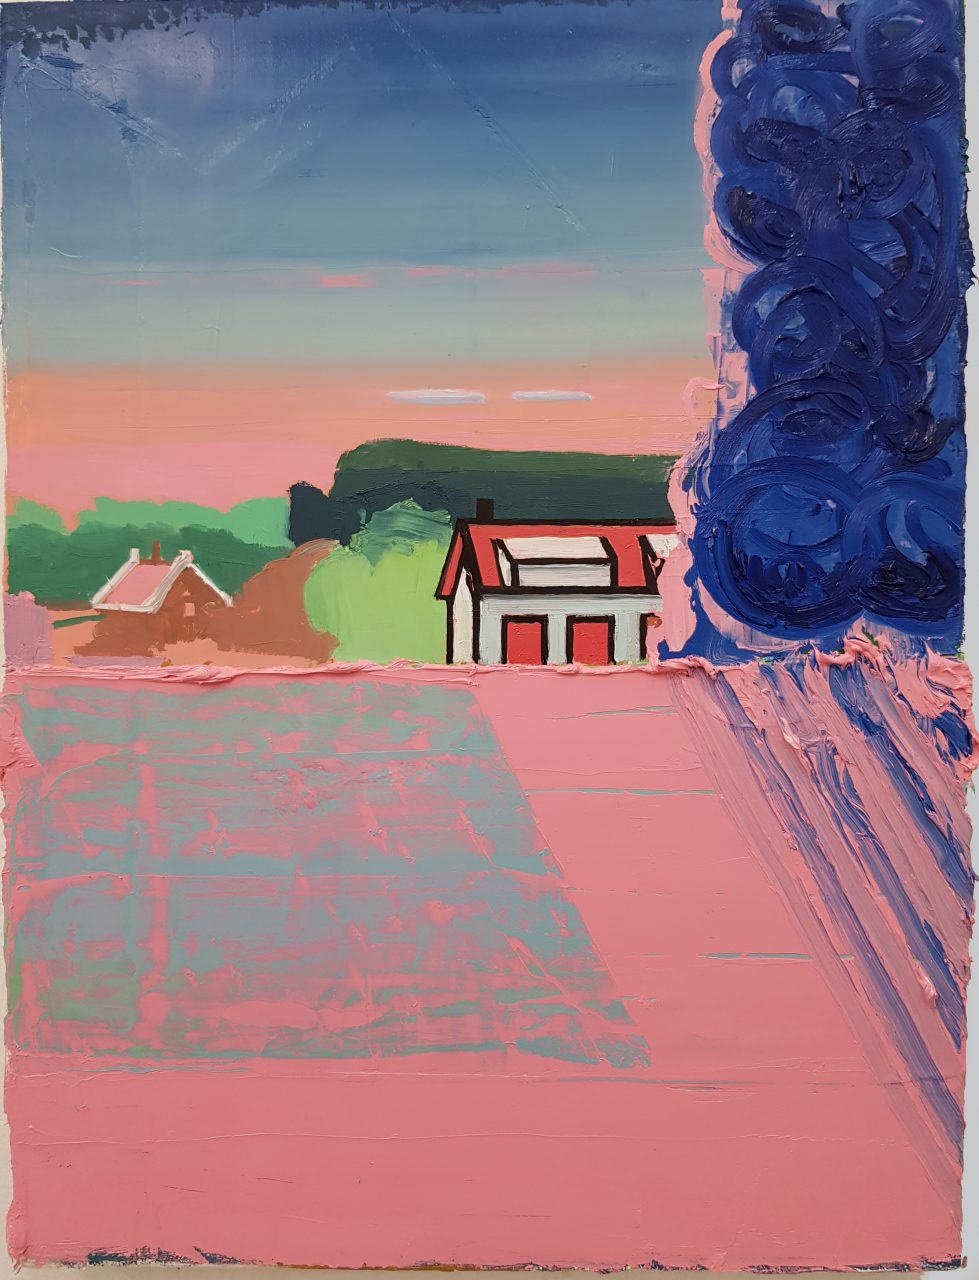 Albert Zwaan - Dike House VI, 2018. Oil on linen, 40x30cm